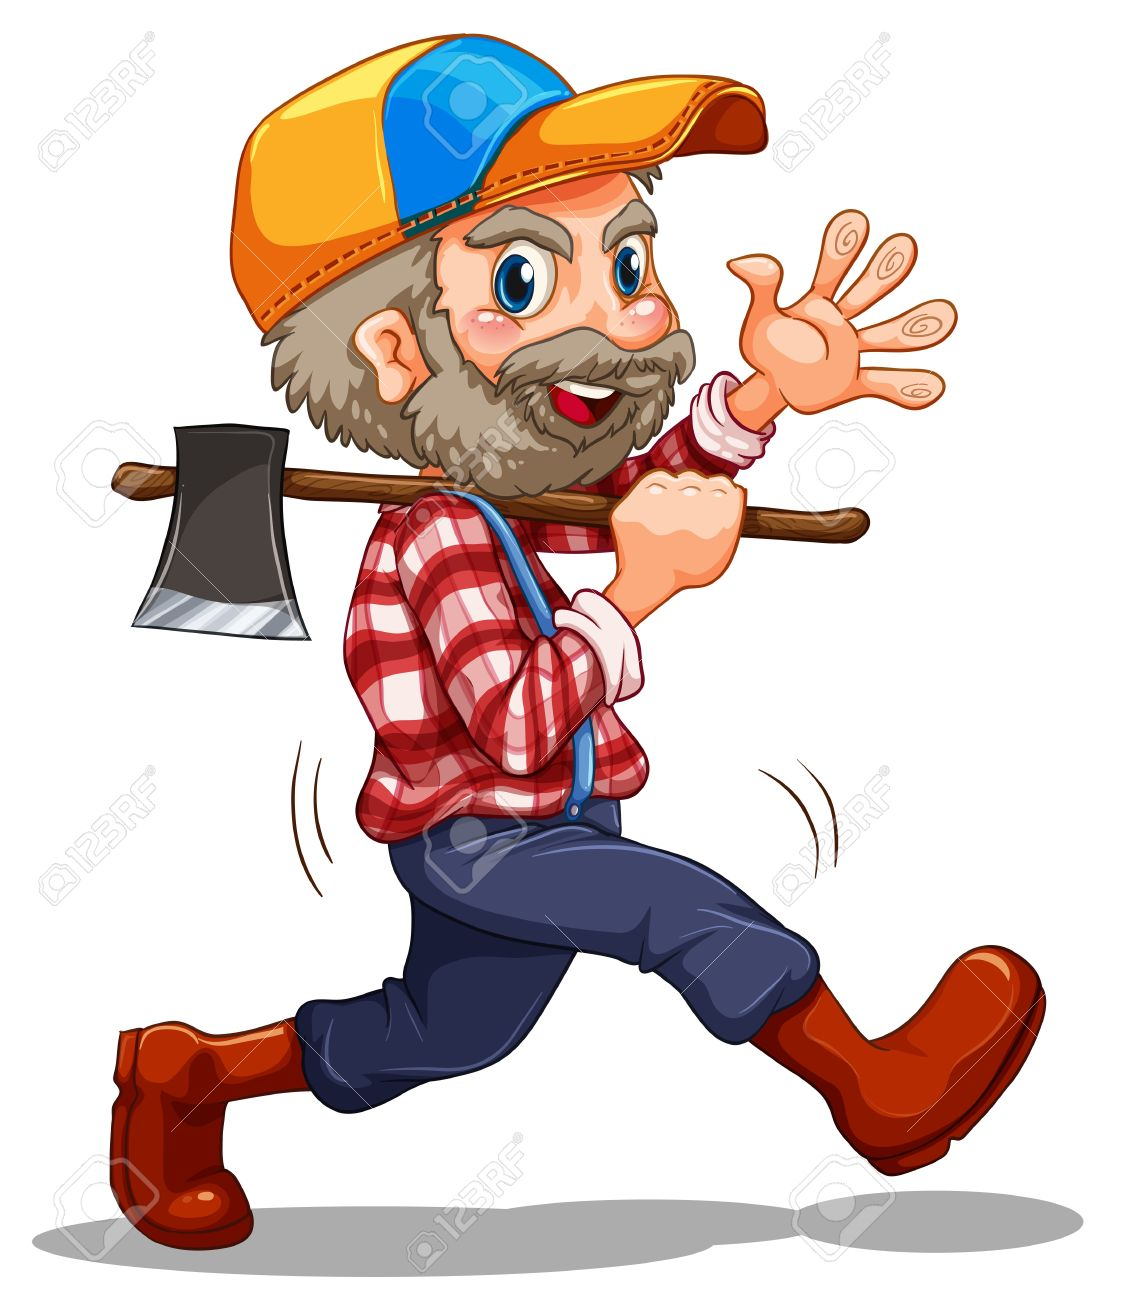 Illustration of a lumberjack on a white background Stock Vector - 22065757